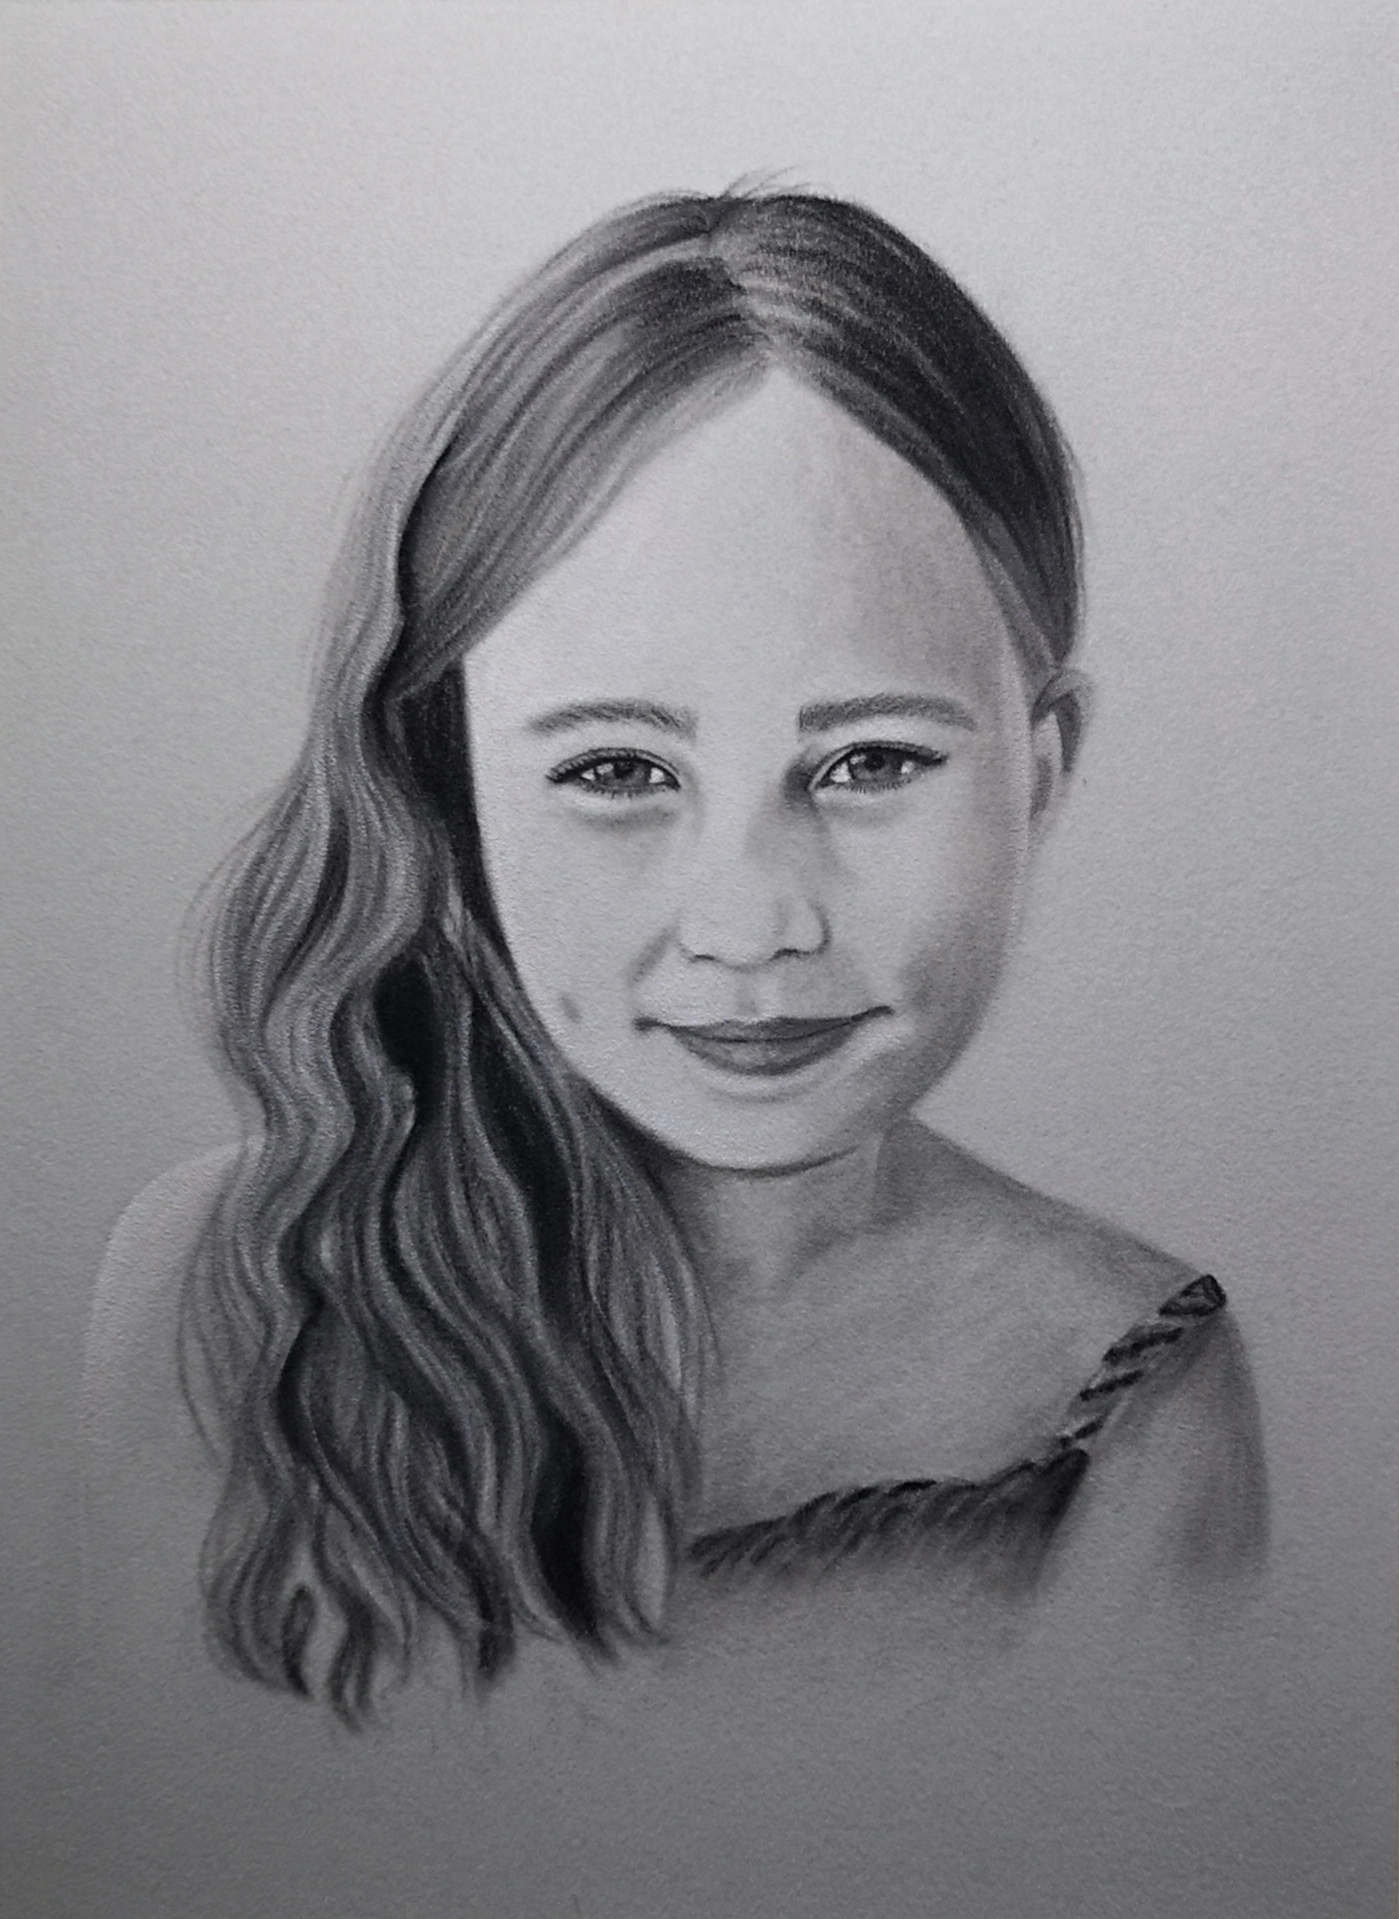 Child portrait in monochrome